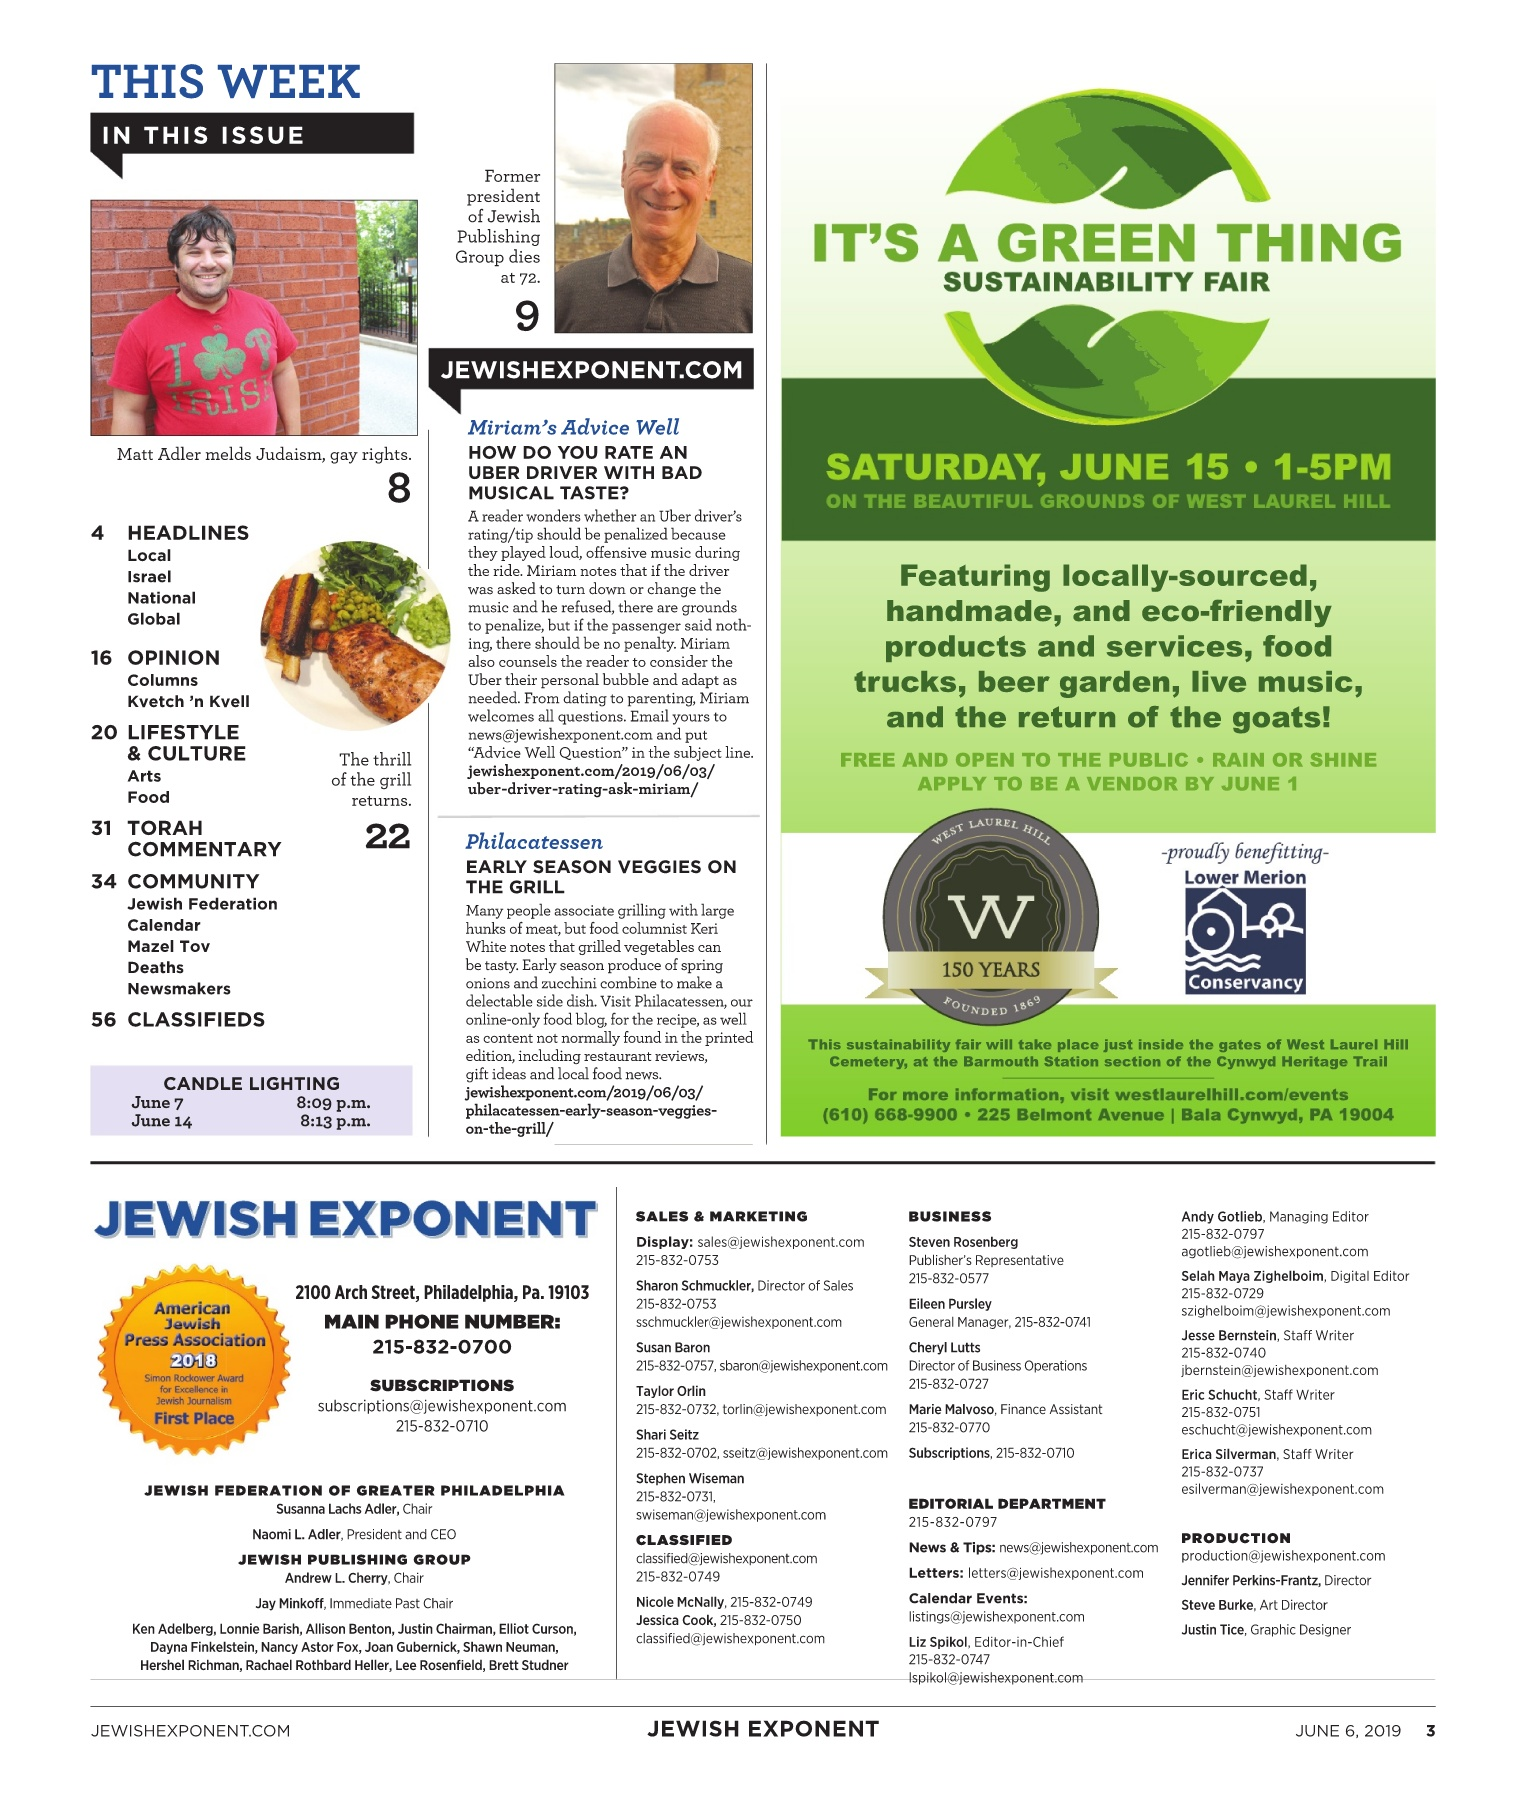 Jewish Exponent June 6, 2019 Pages 1 - 50 - Text Version | AnyFlip